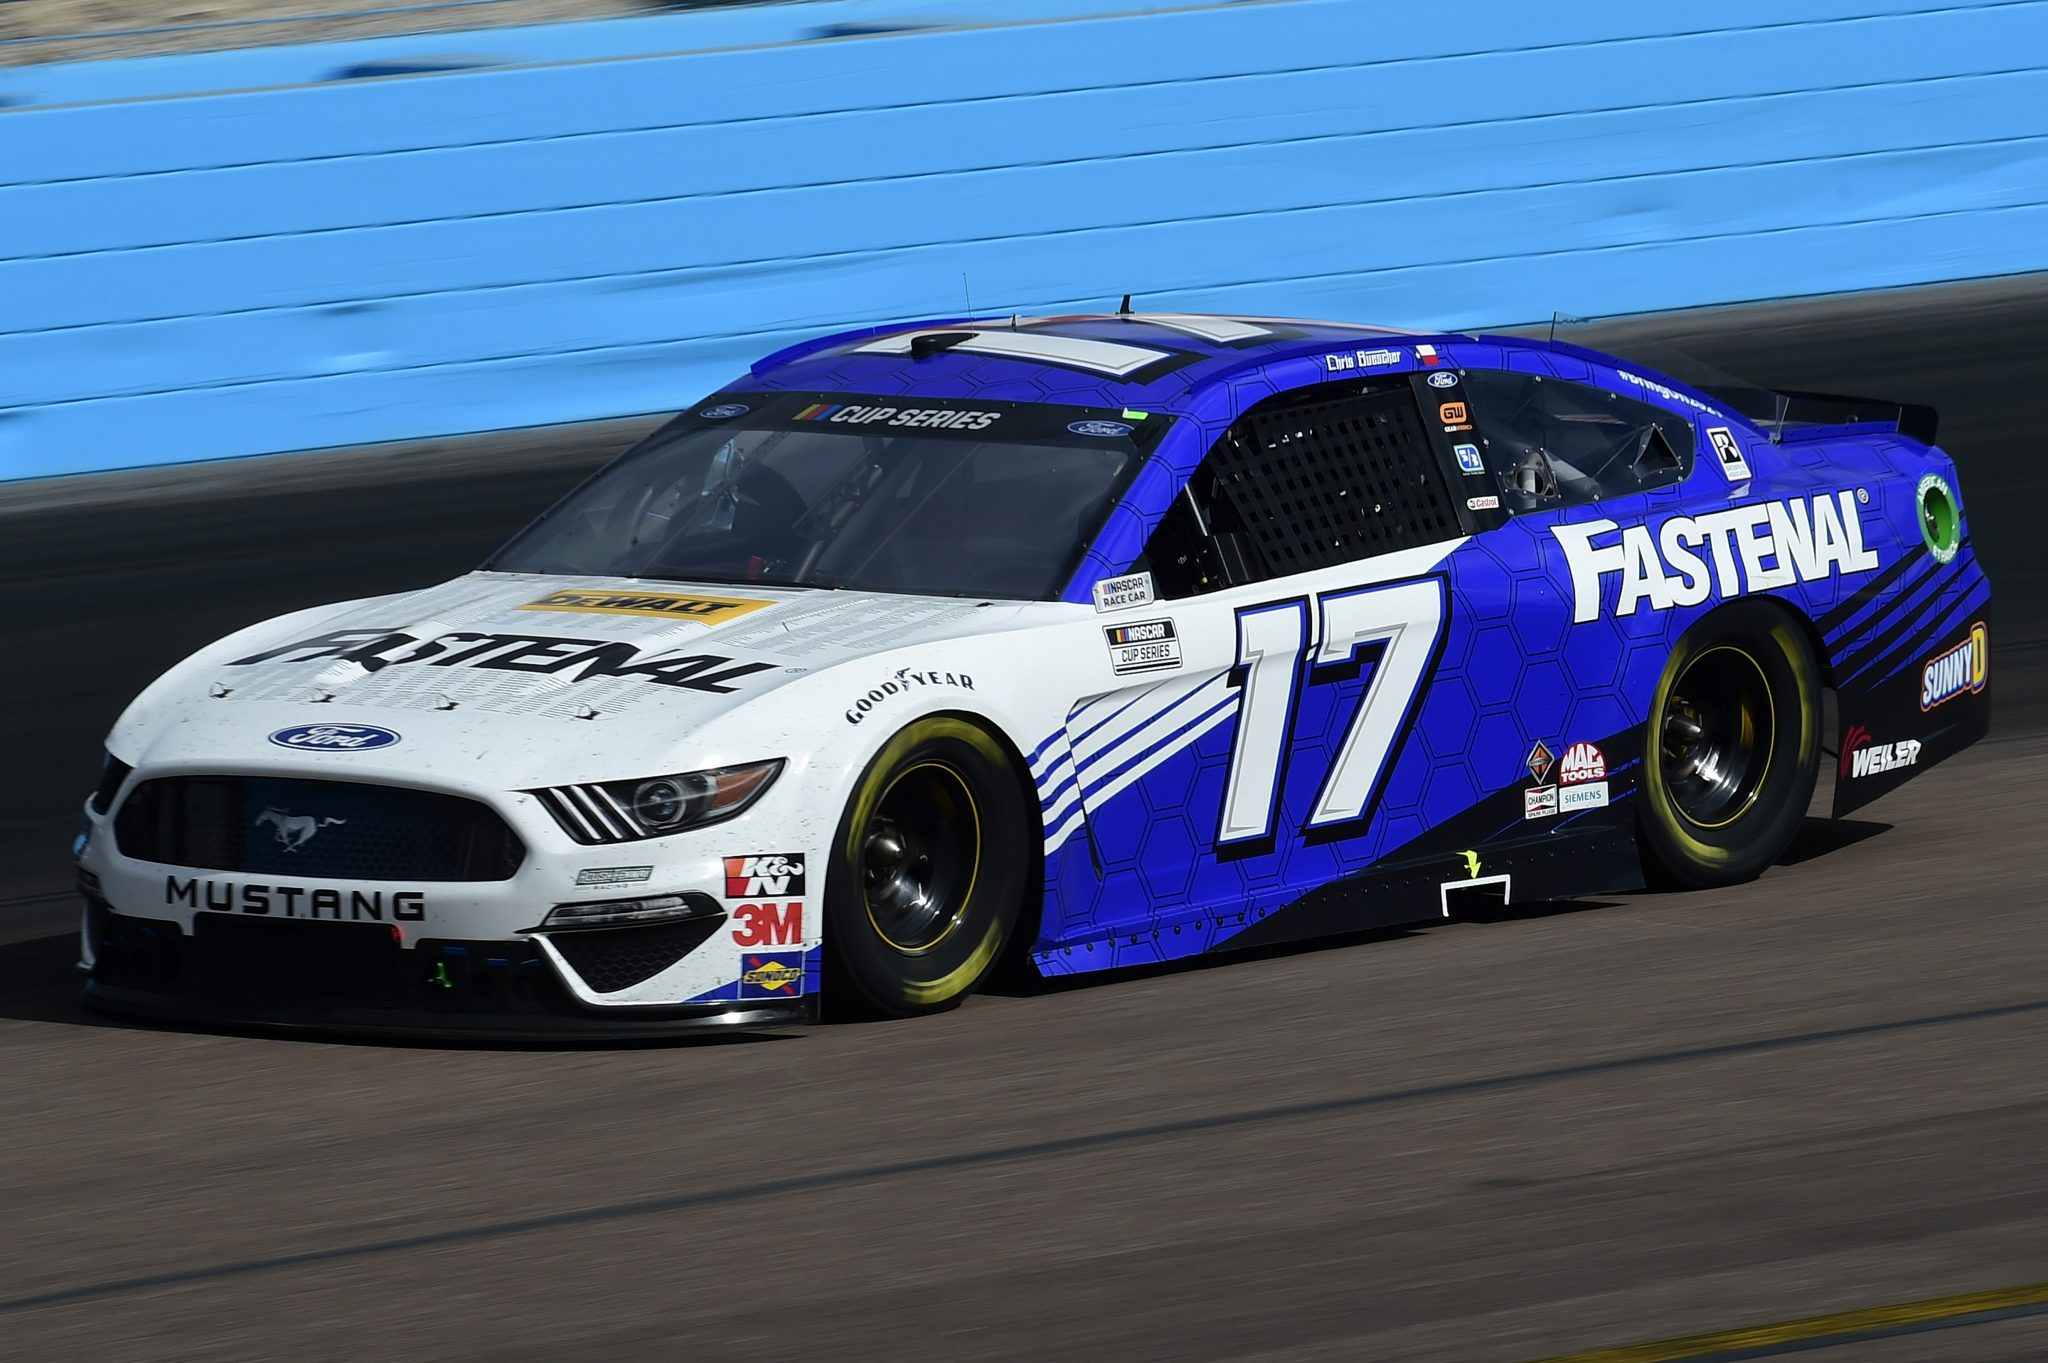 AVONDALE, ARIZONA - NOVEMBER 08: Chris Buescher, driver of the #17 Fastenal Ford, drives during the NASCAR Cup Series Season Finale 500 at Phoenix Raceway on November 08, 2020 in Avondale, Arizona. (Photo by Jared C. Tilton/Getty Images) | Getty Images